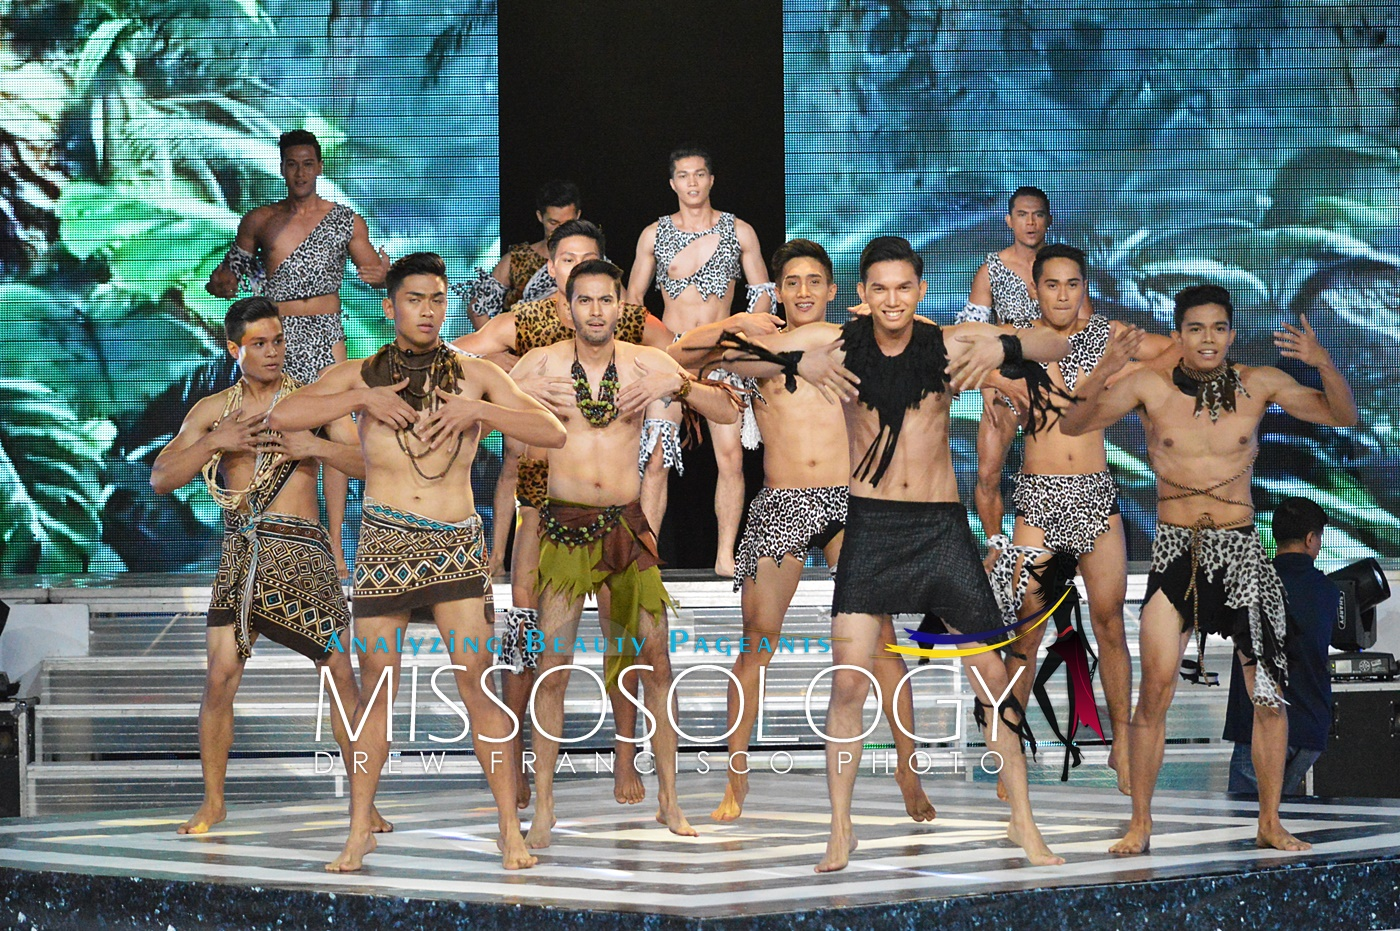 The 27 candidates opened the show with a jungle inspired upbeat number